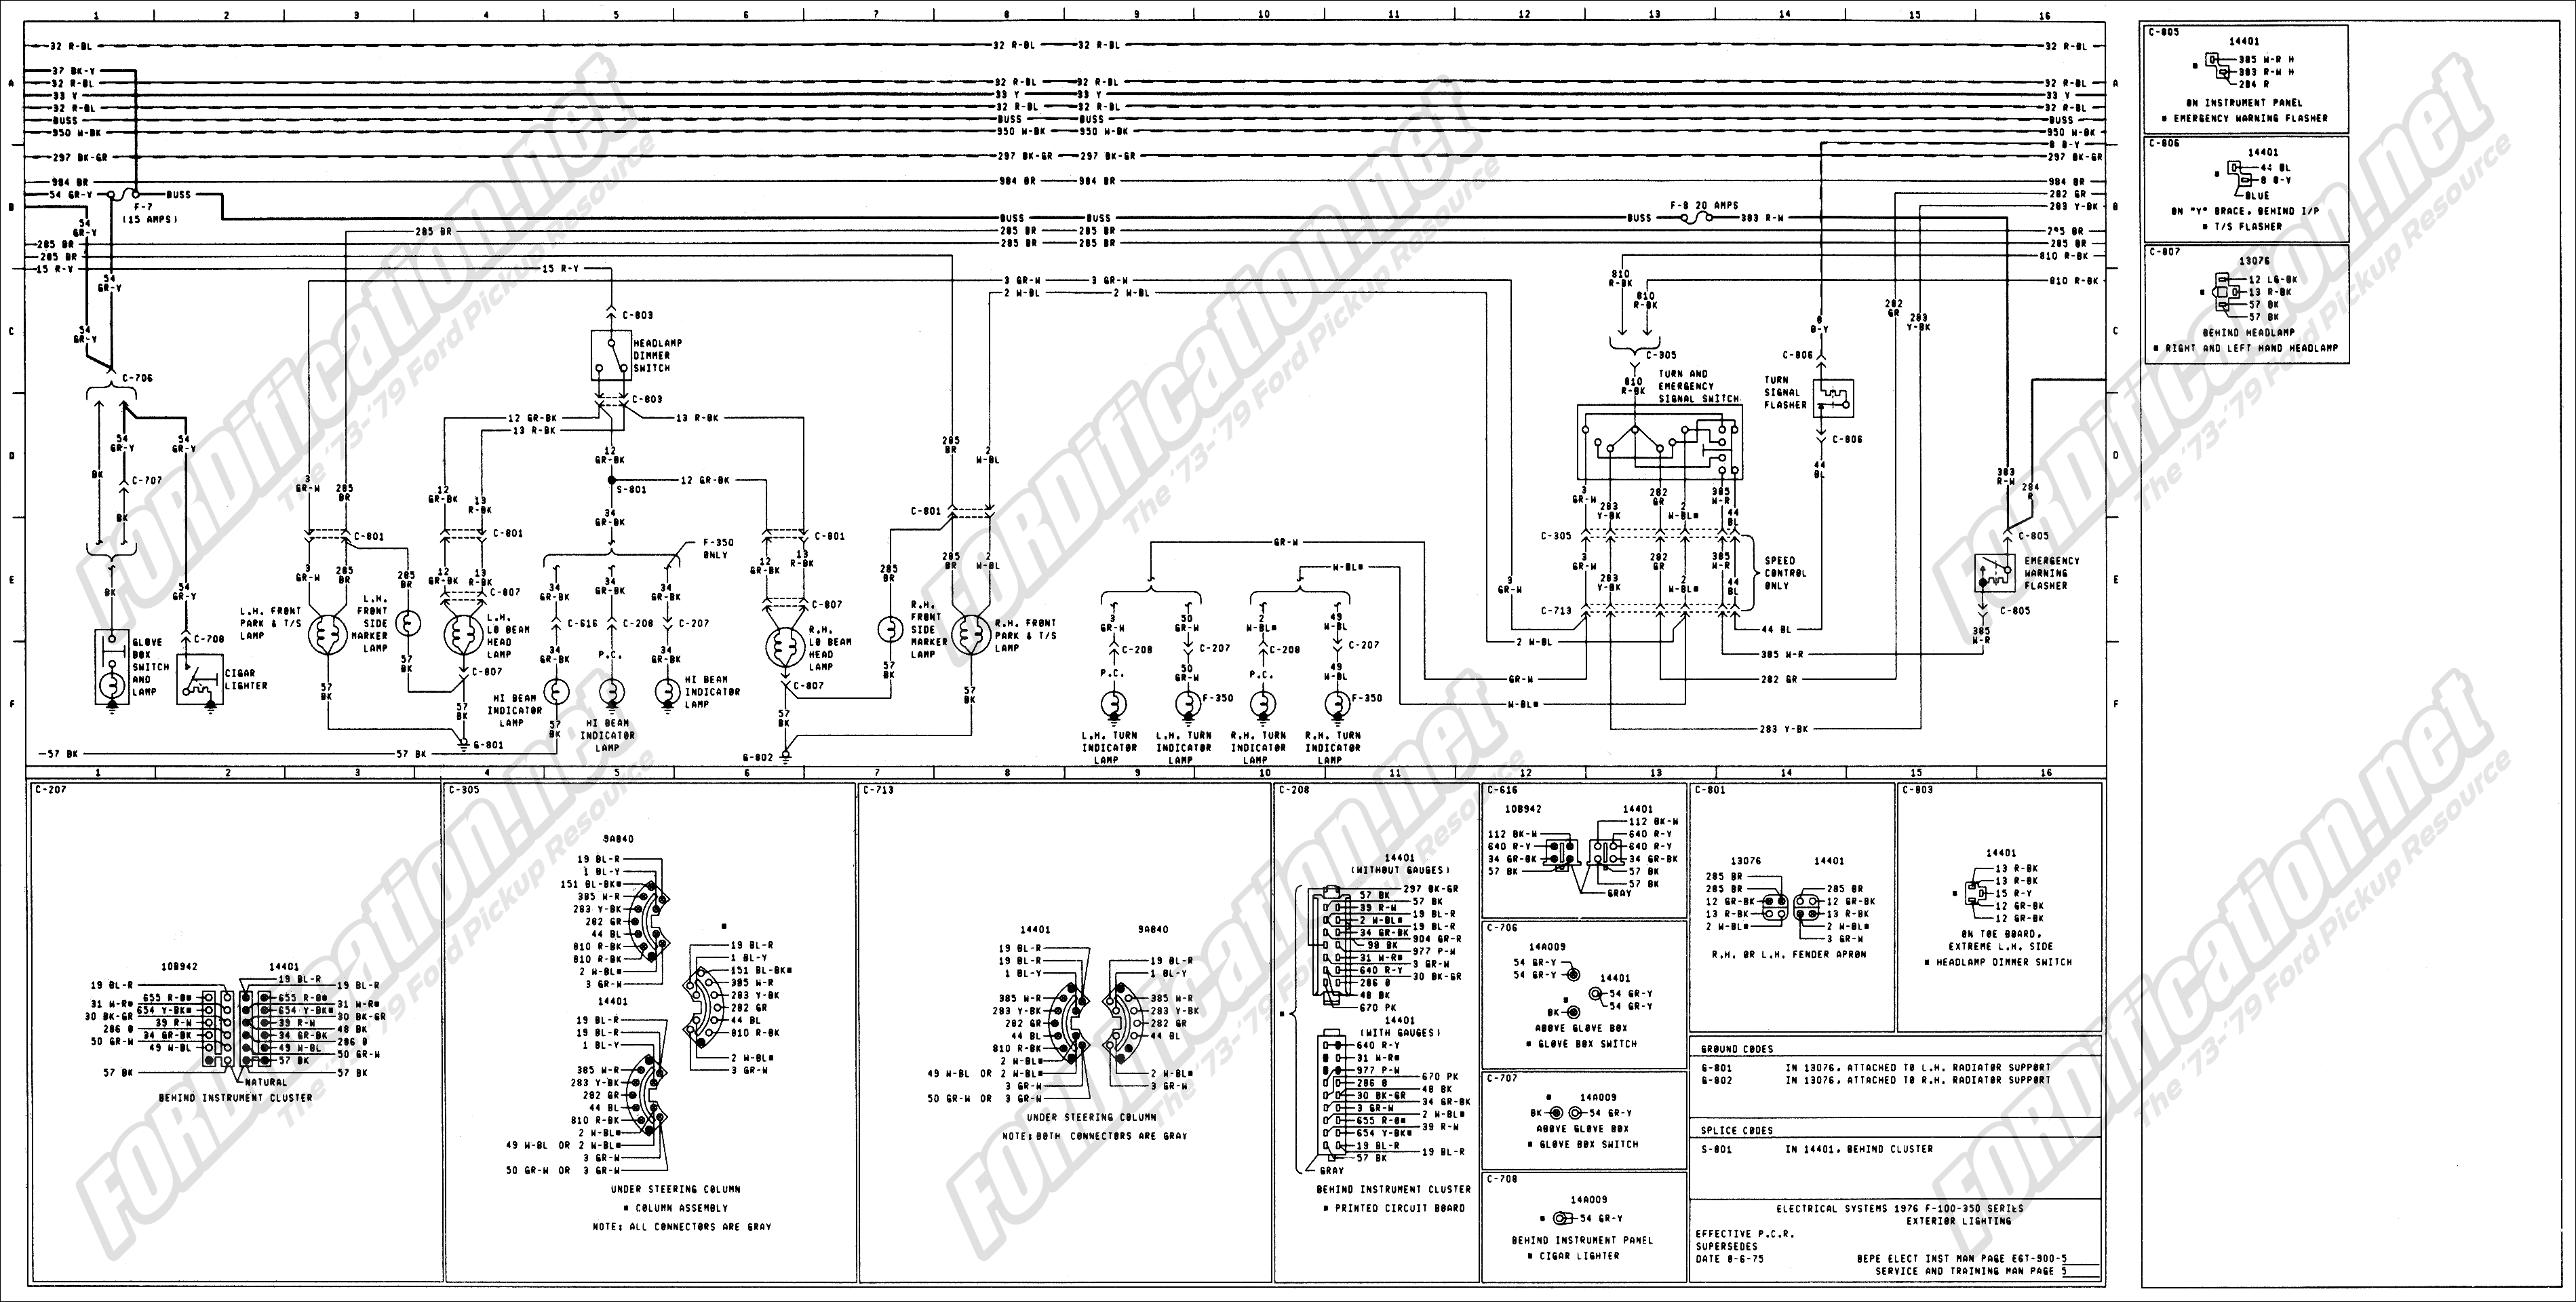 2014 chevy wiring diagram 2014 ford f150 trailer wiring diagram | trailer wiring diagram 2014 f150 wiring diagram